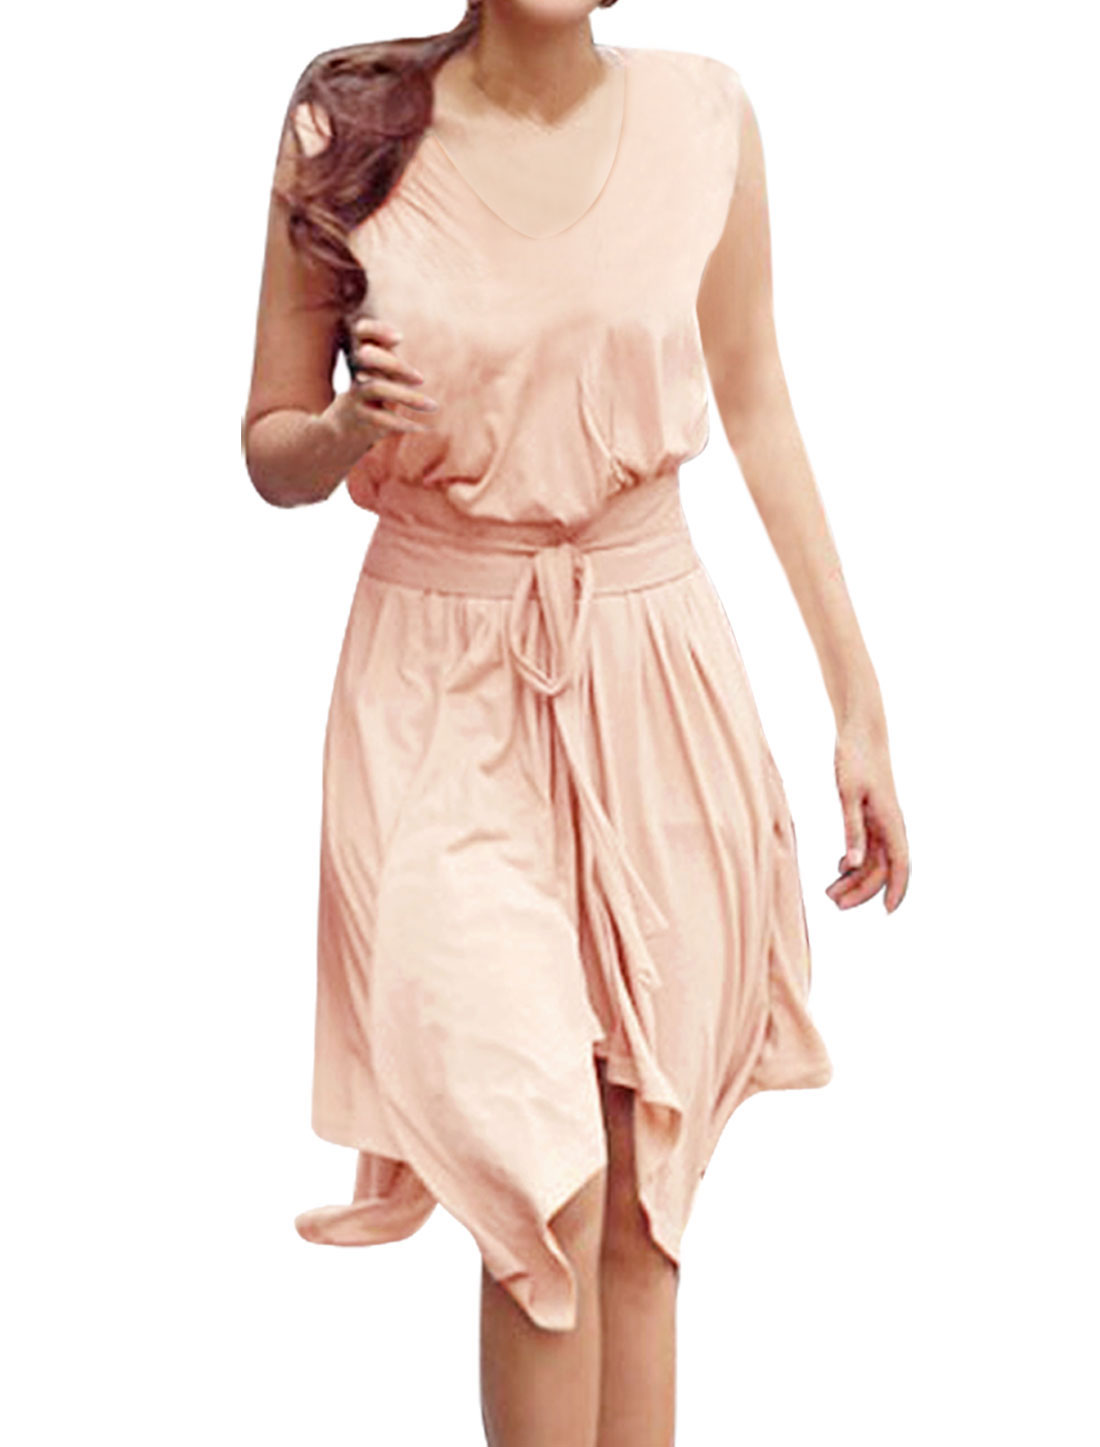 Women Pale Pink Deep V Neck Sleeveless Asymmetric Hem Knee Length Dress S